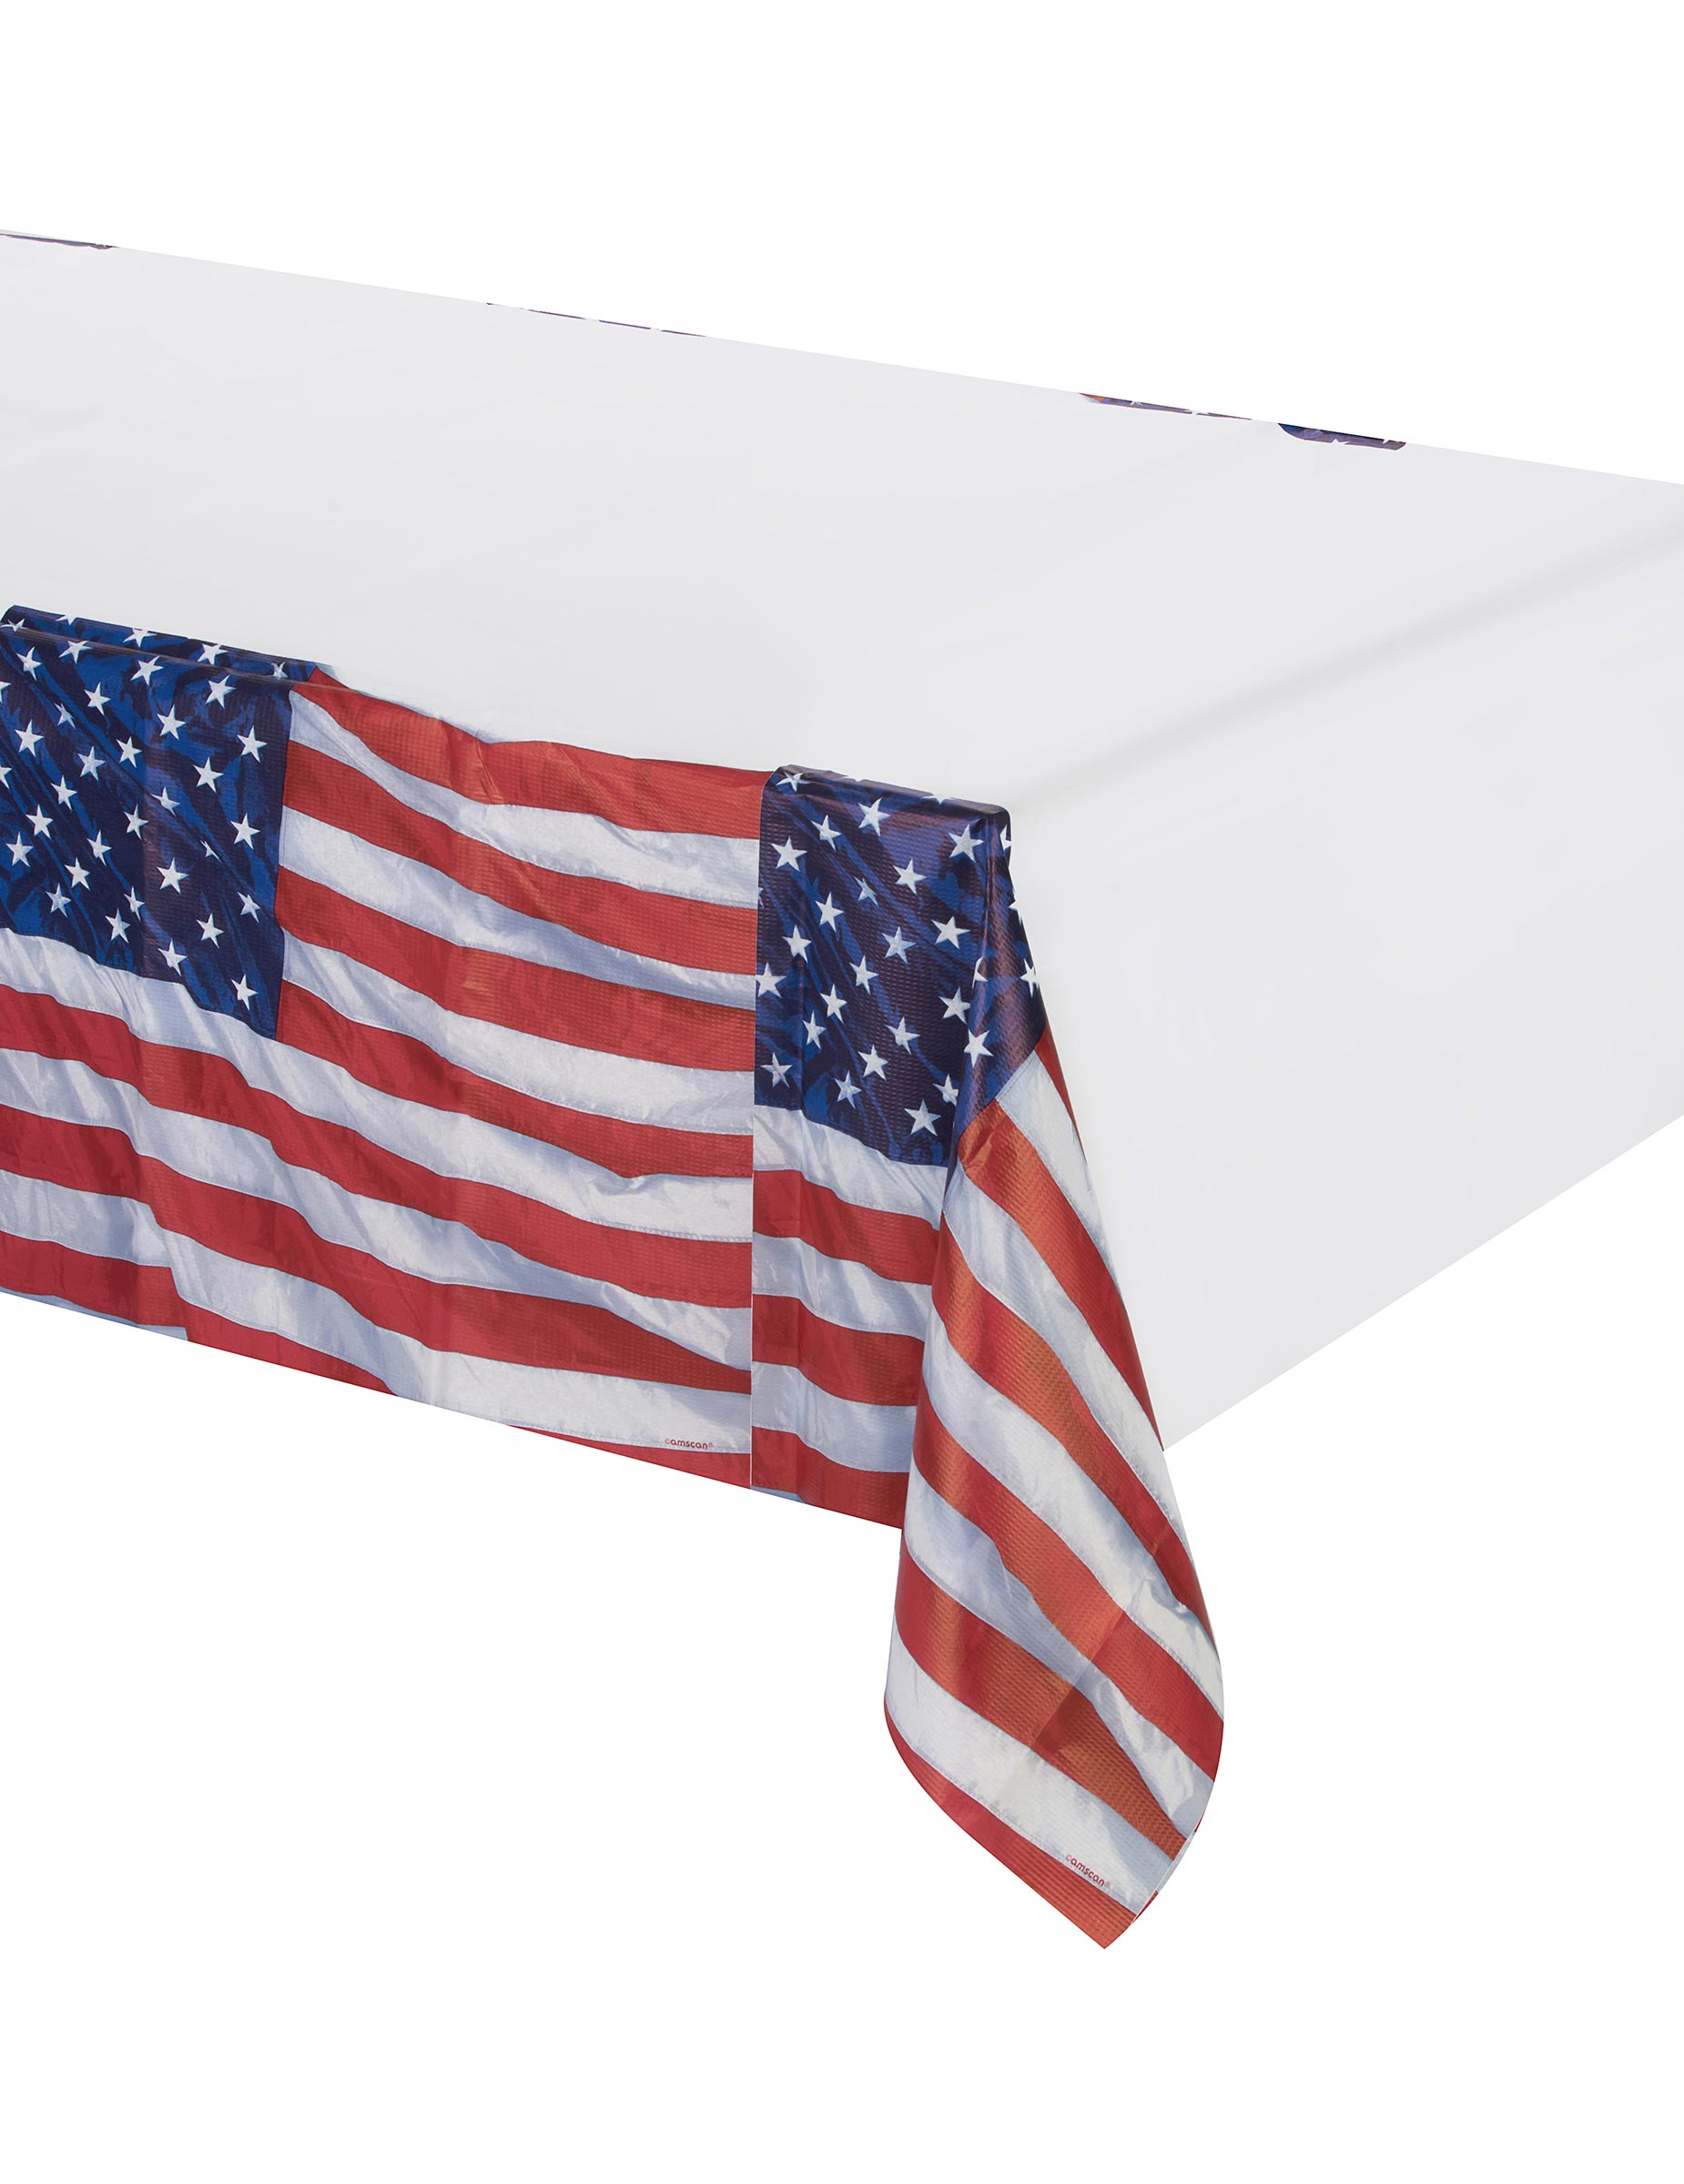 American flag tablecloth decorations and fancy dress for American flag decoration